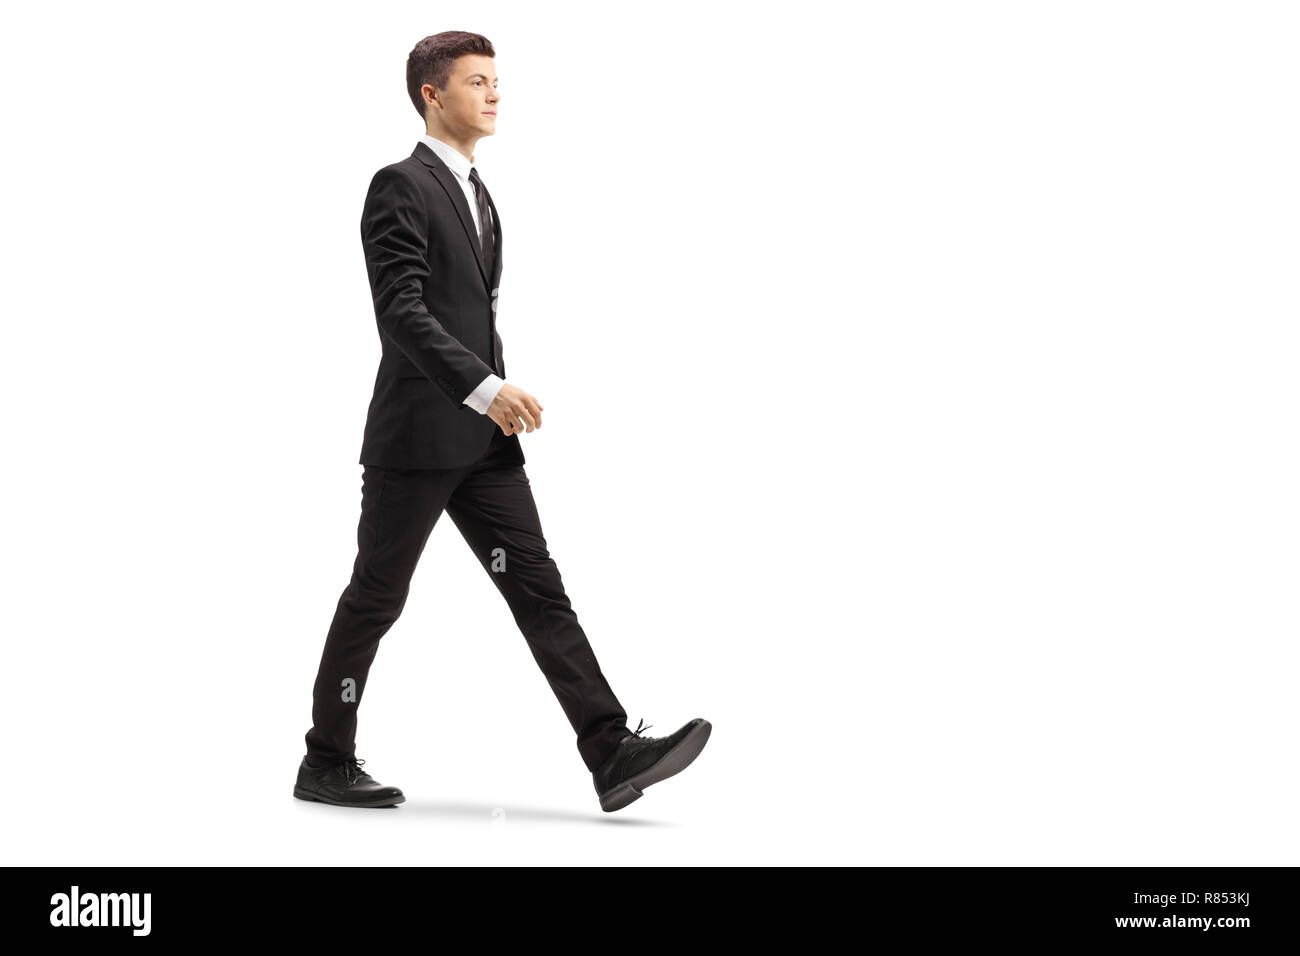 0297455957e3 Full length shot of a young handsome man in a black suit walking isolated  on white